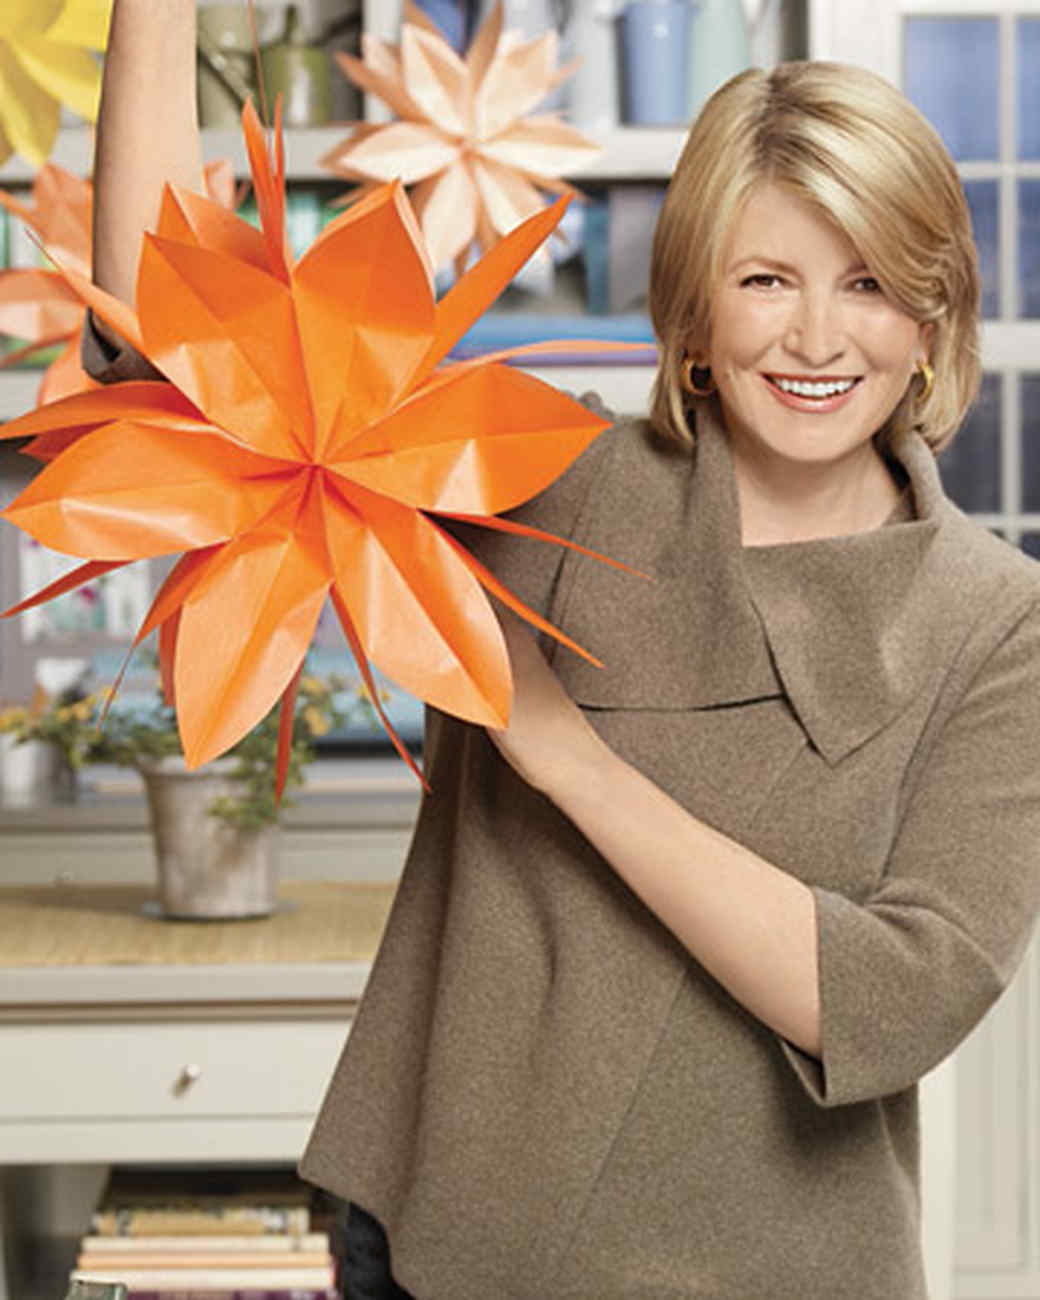 martha_stewart_crafts_image.jpg